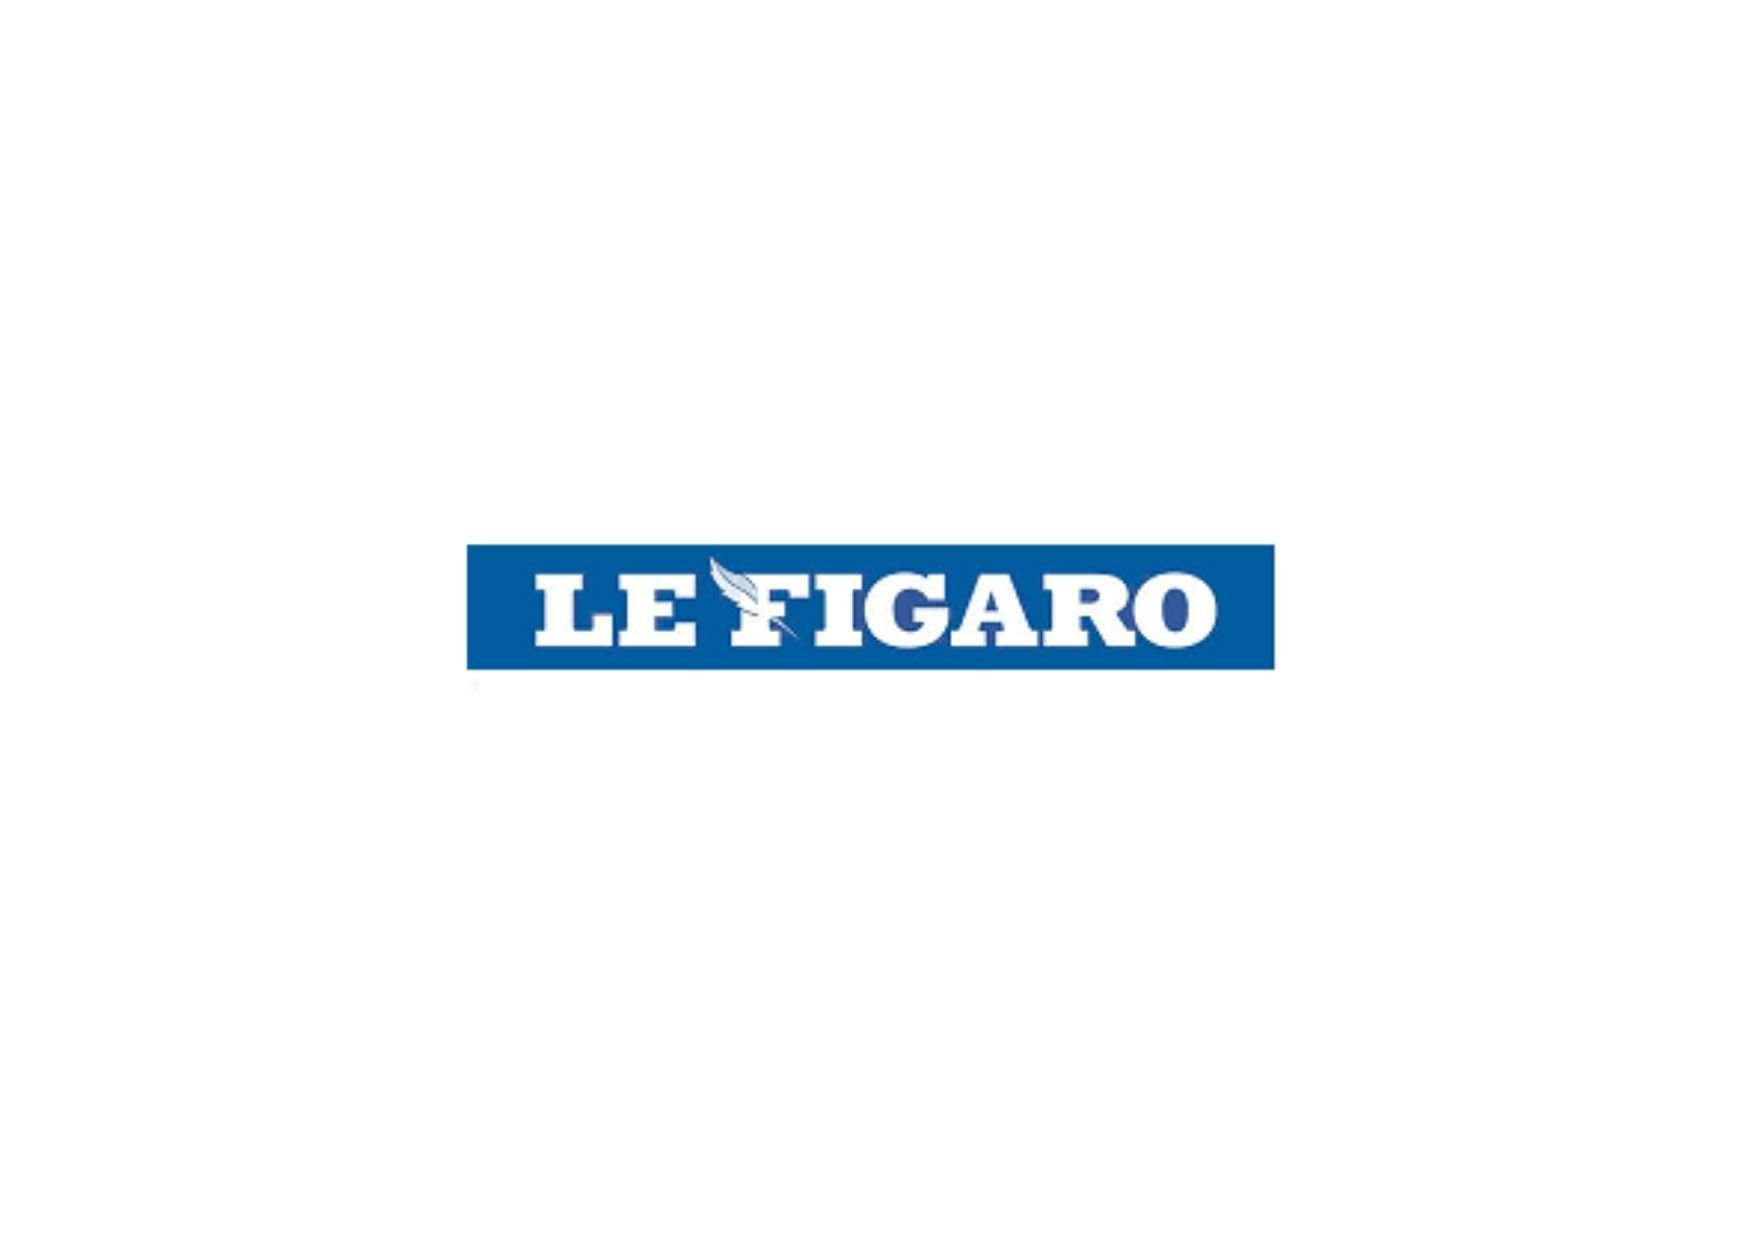 Noreena's piece in LE FIGARO, France